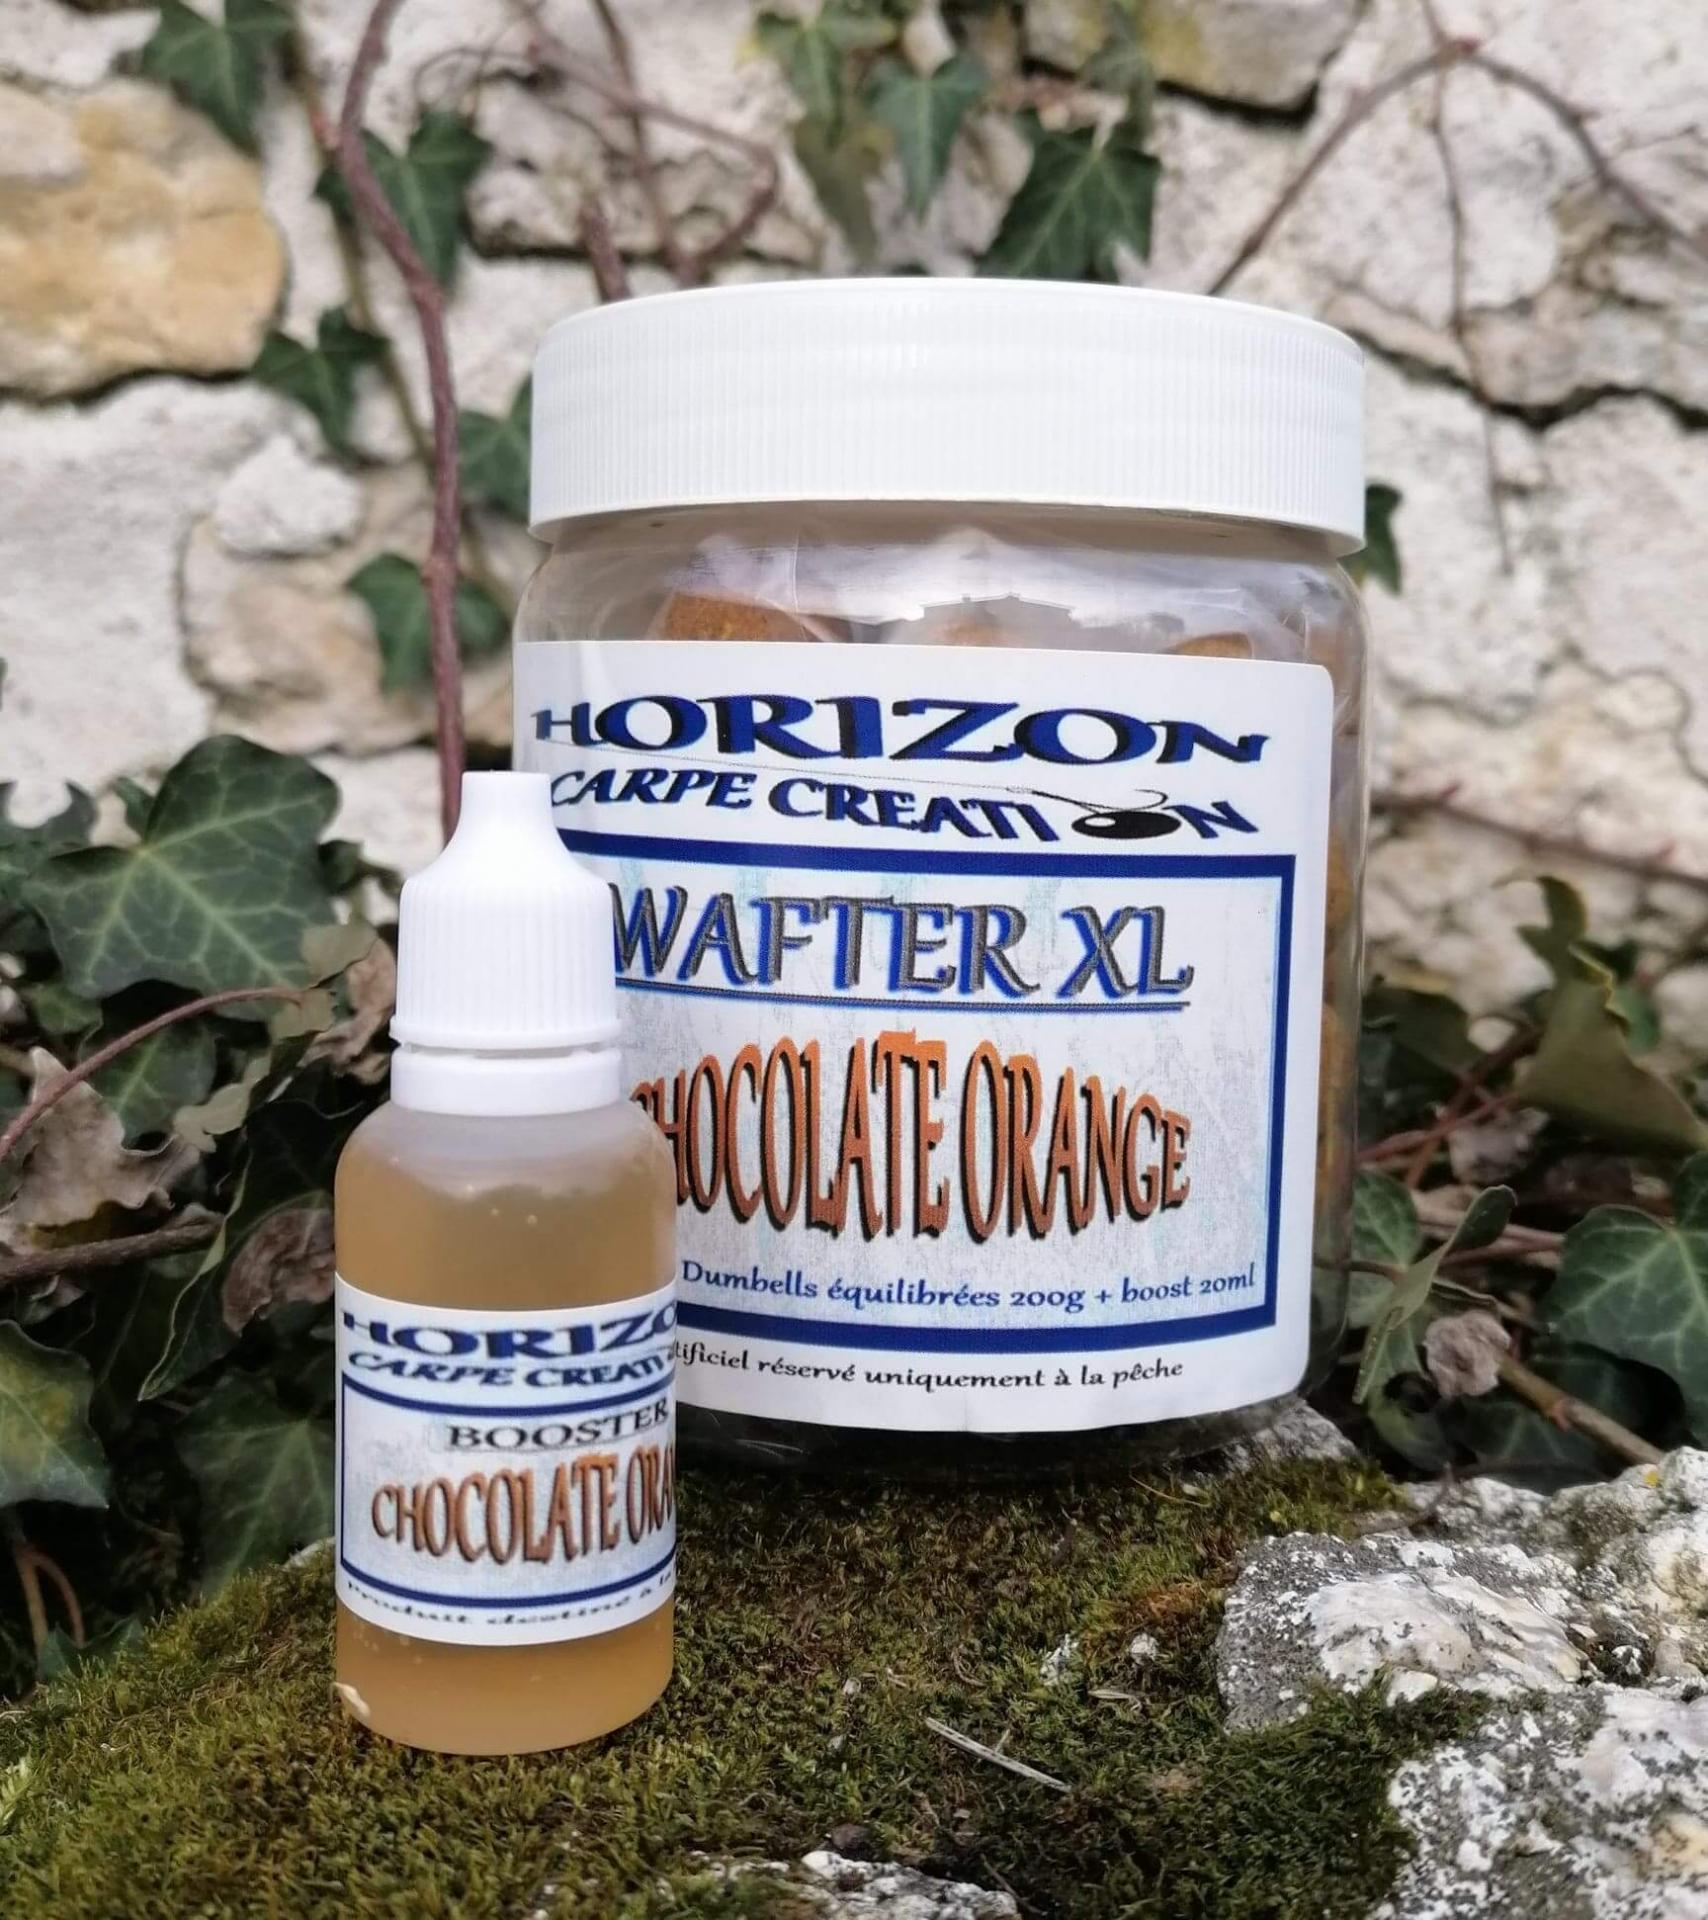 Wafter xl chocolate